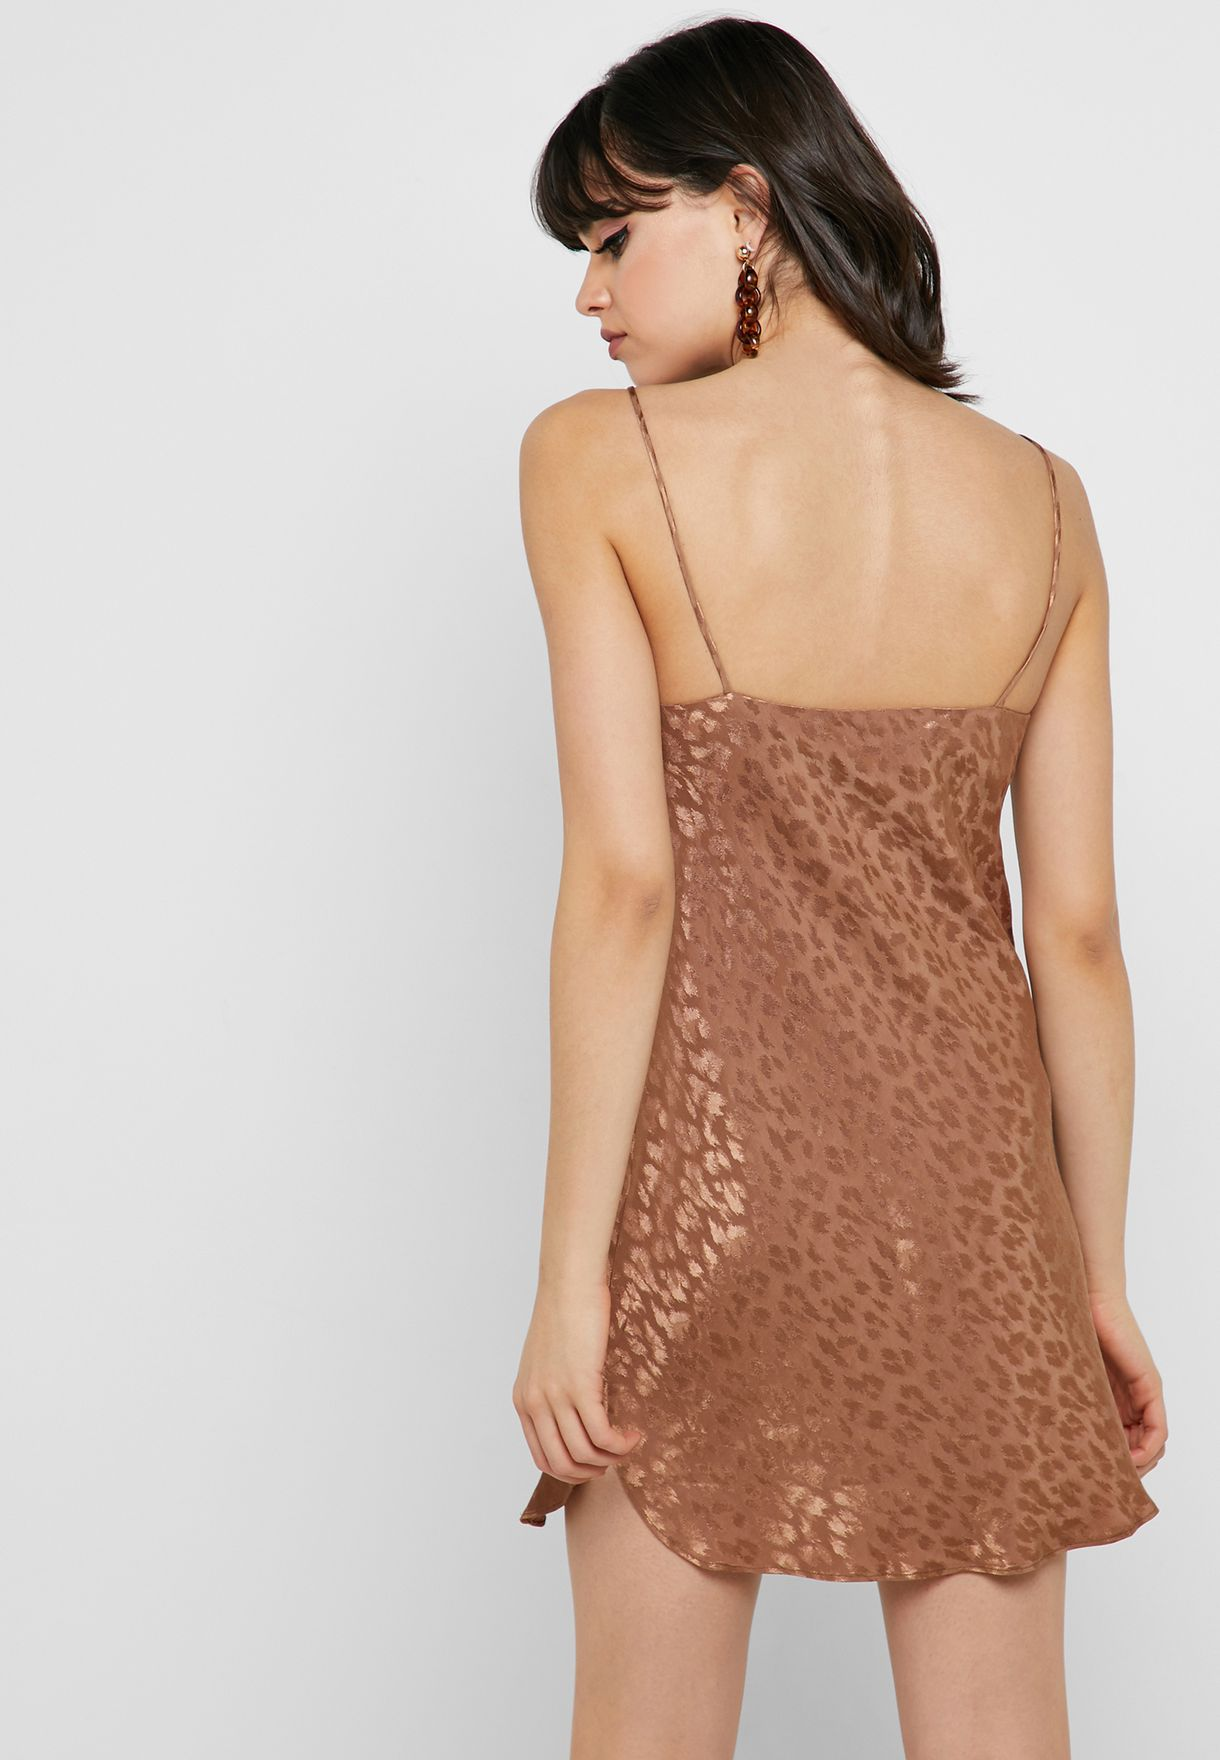 196a67feed253 Shop Topshop brown Jacquard Slip Dress 10W16QBRZ for Women in Kuwait ...